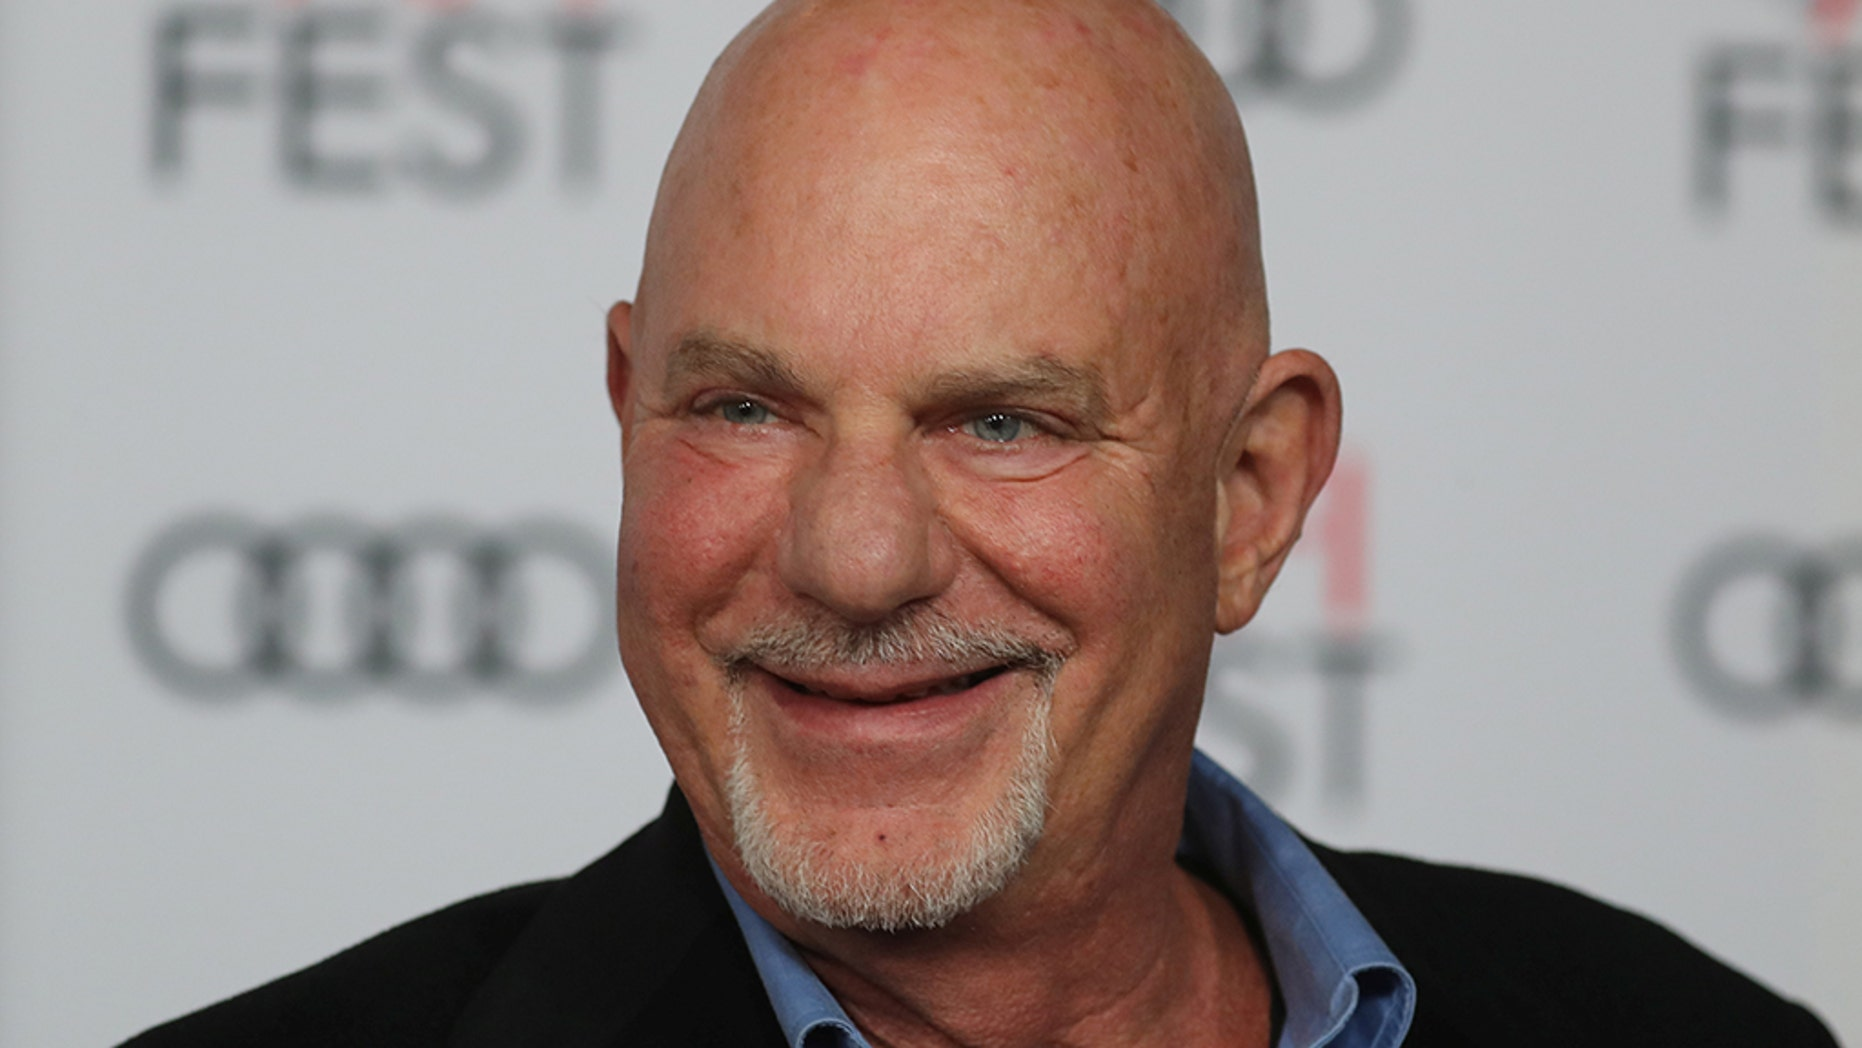 Director and creator of 'The Fast and the Furious' franchise Rob Cohen has denied allegations of sexual assault levied against him by his transgender daughter